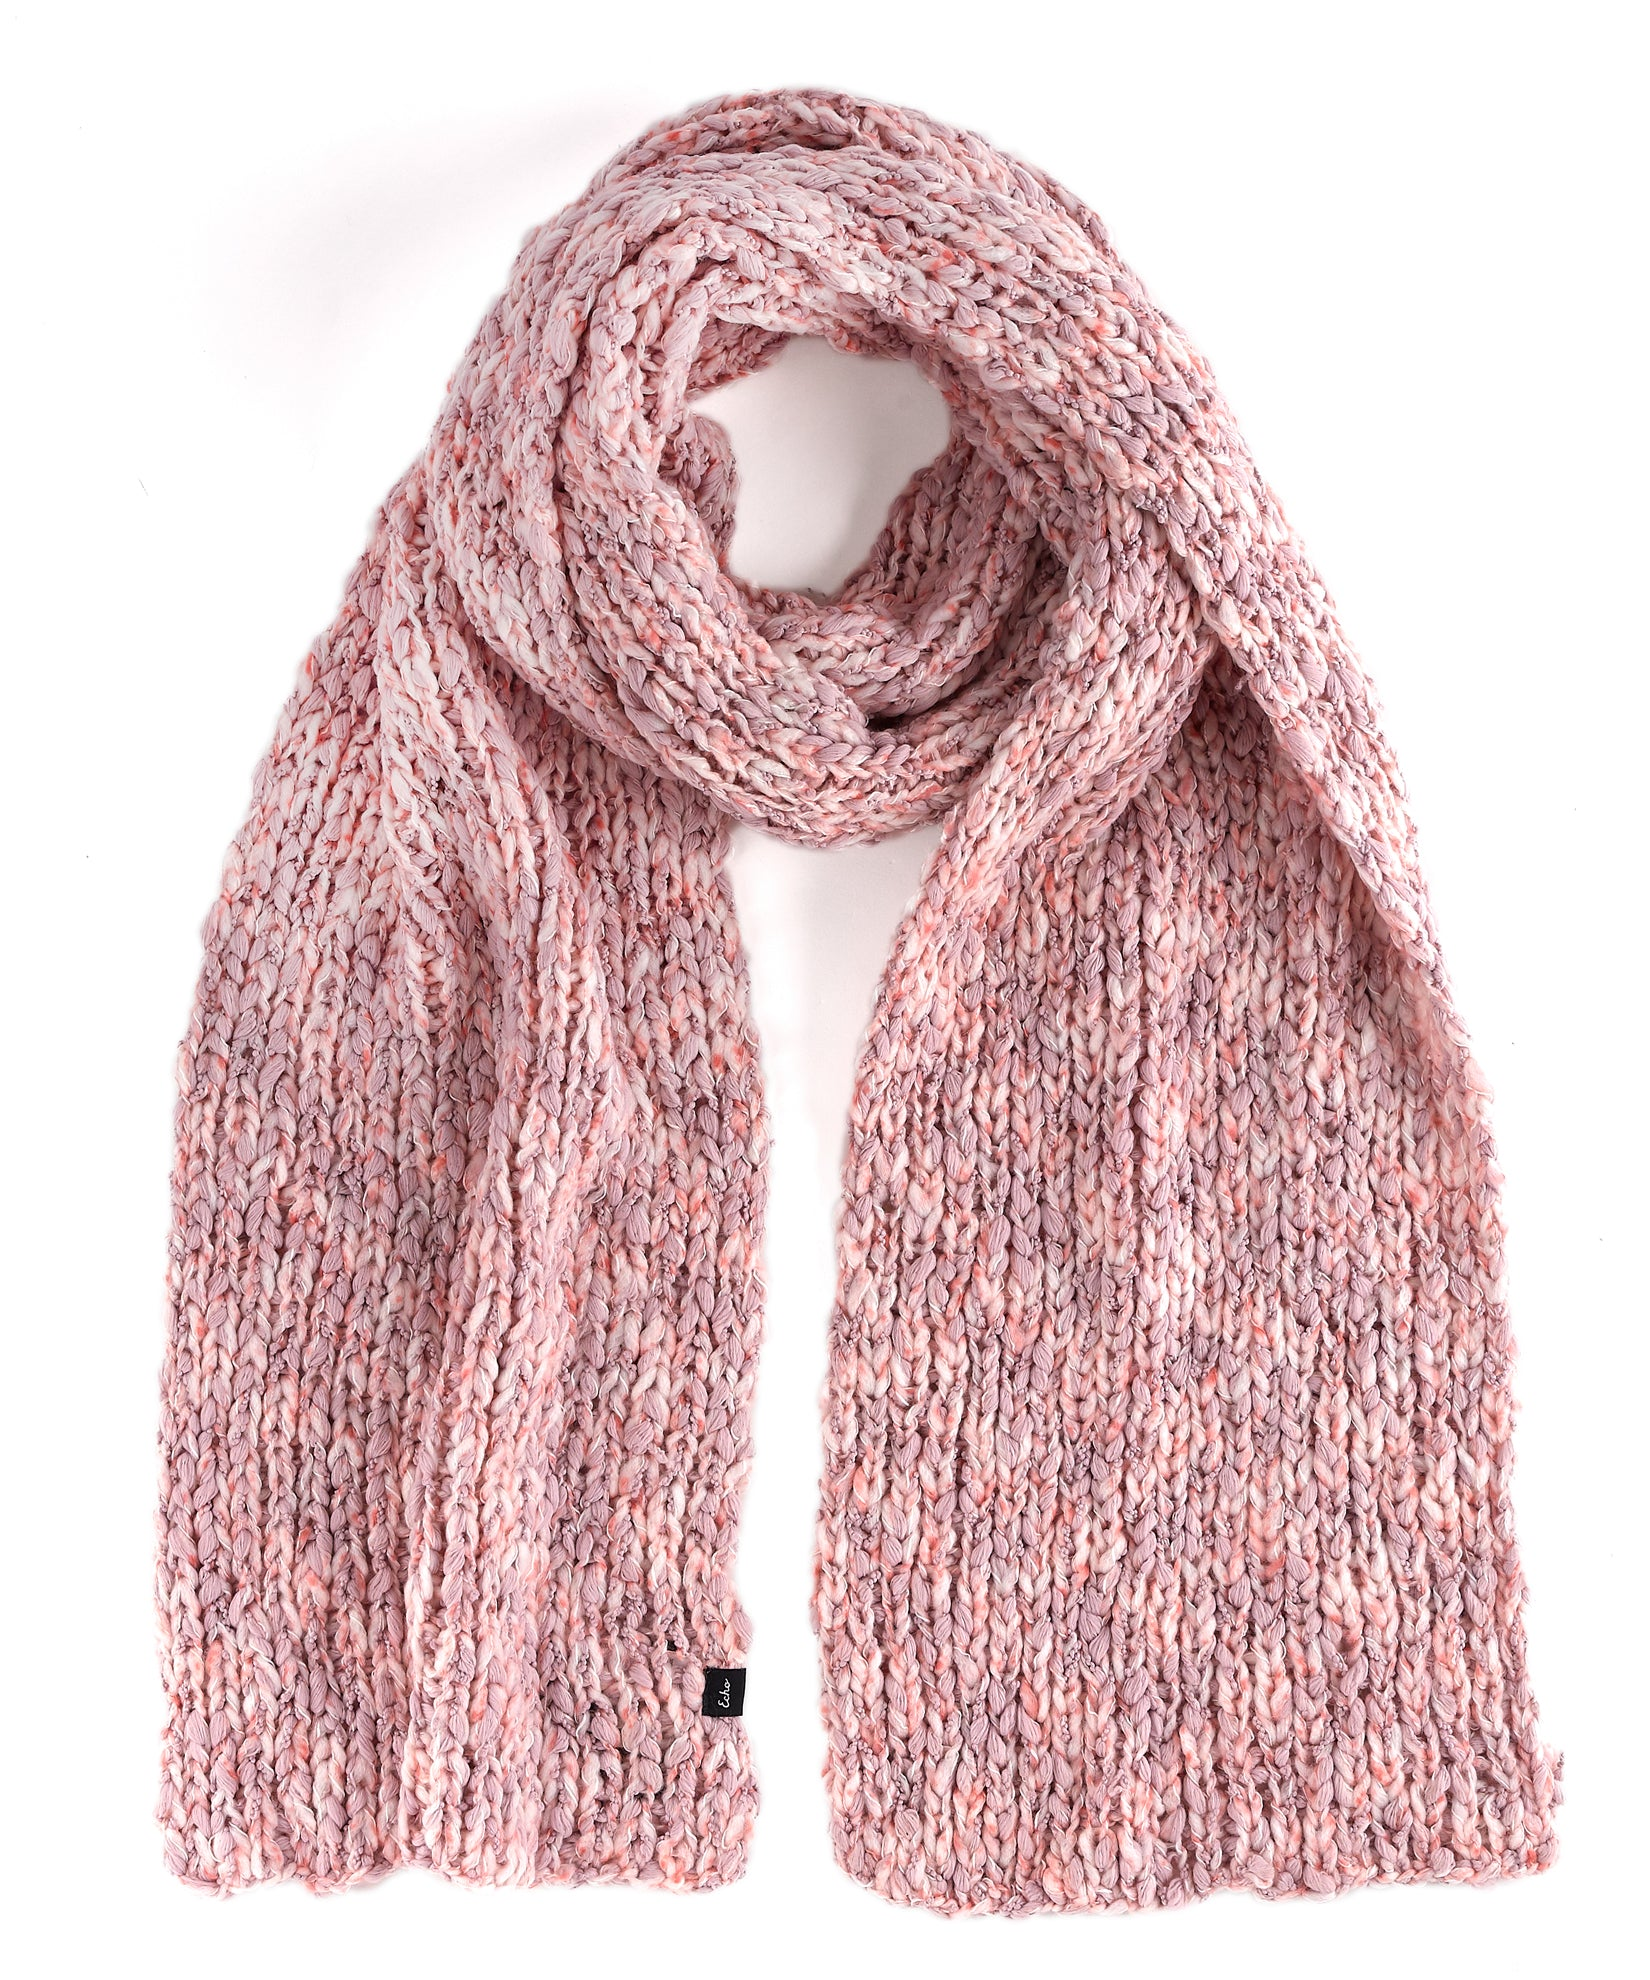 Jaipur Pink - Heathered Roving Scarf